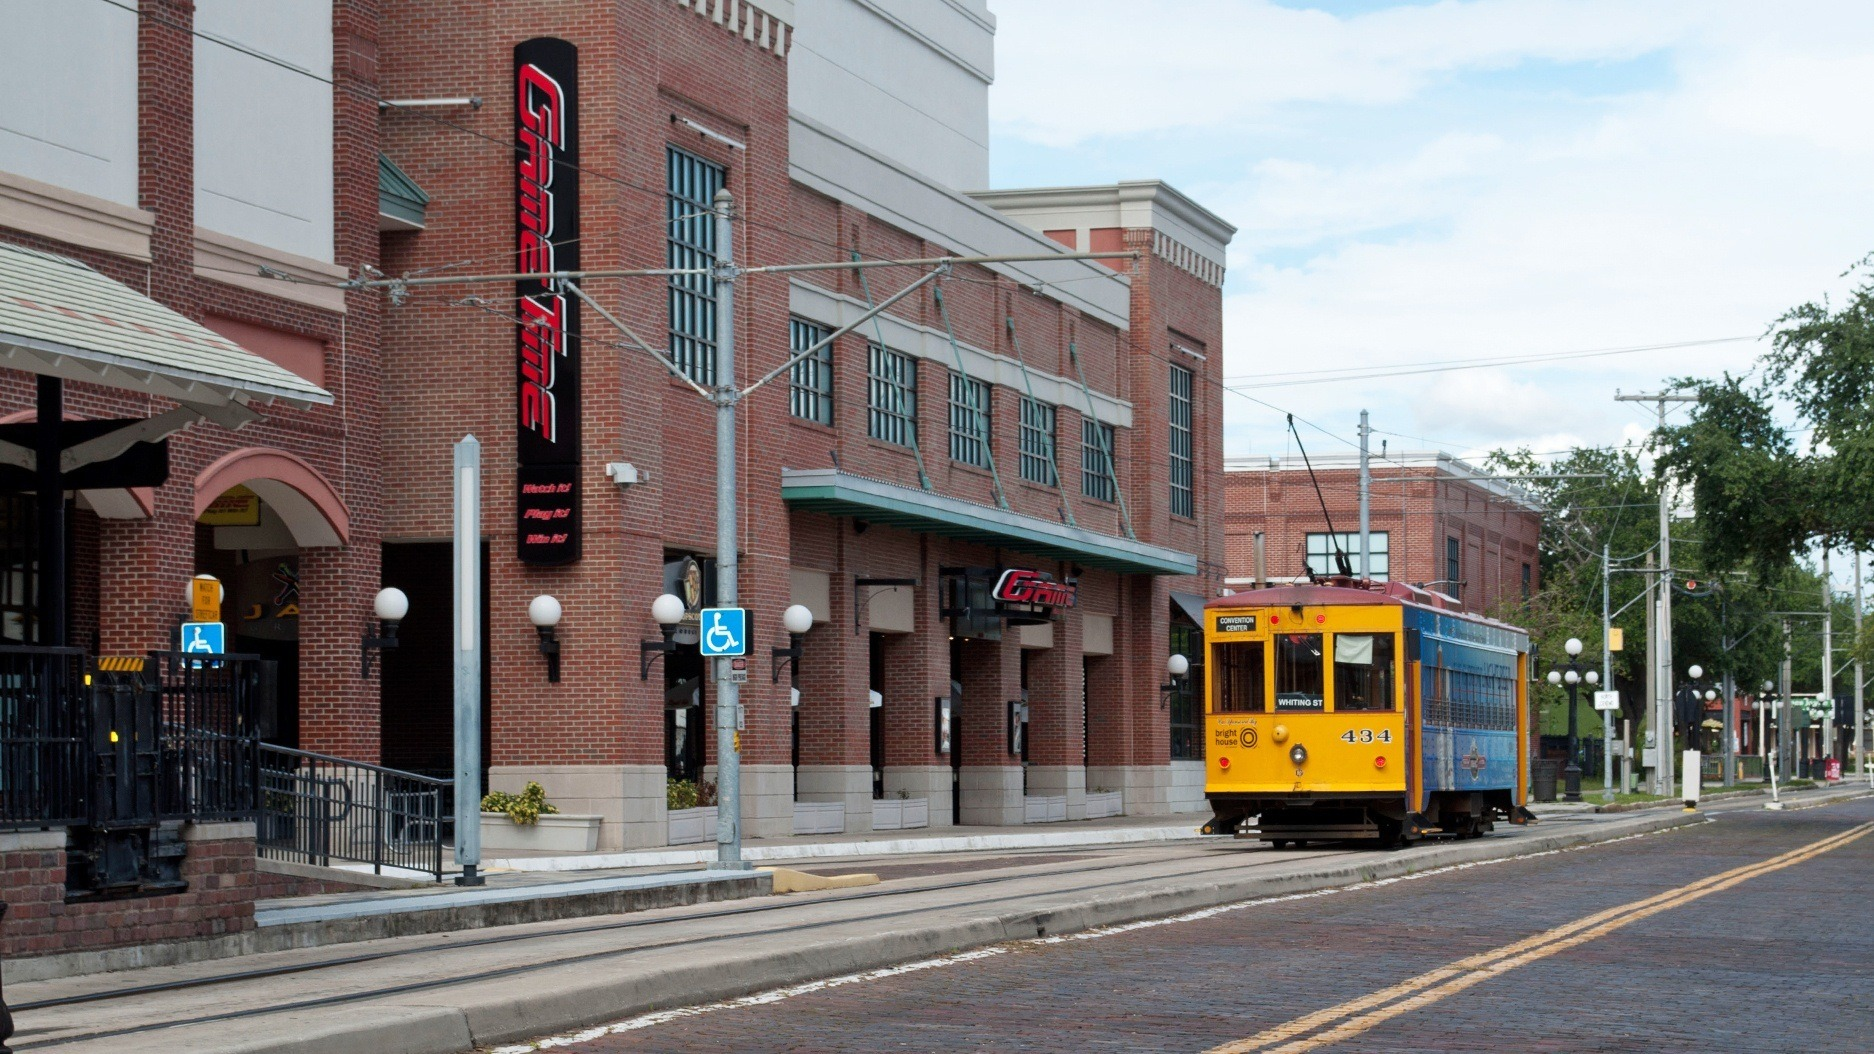 GameTime Tampa Ybor City Centro Ybor full entrance view with trolly